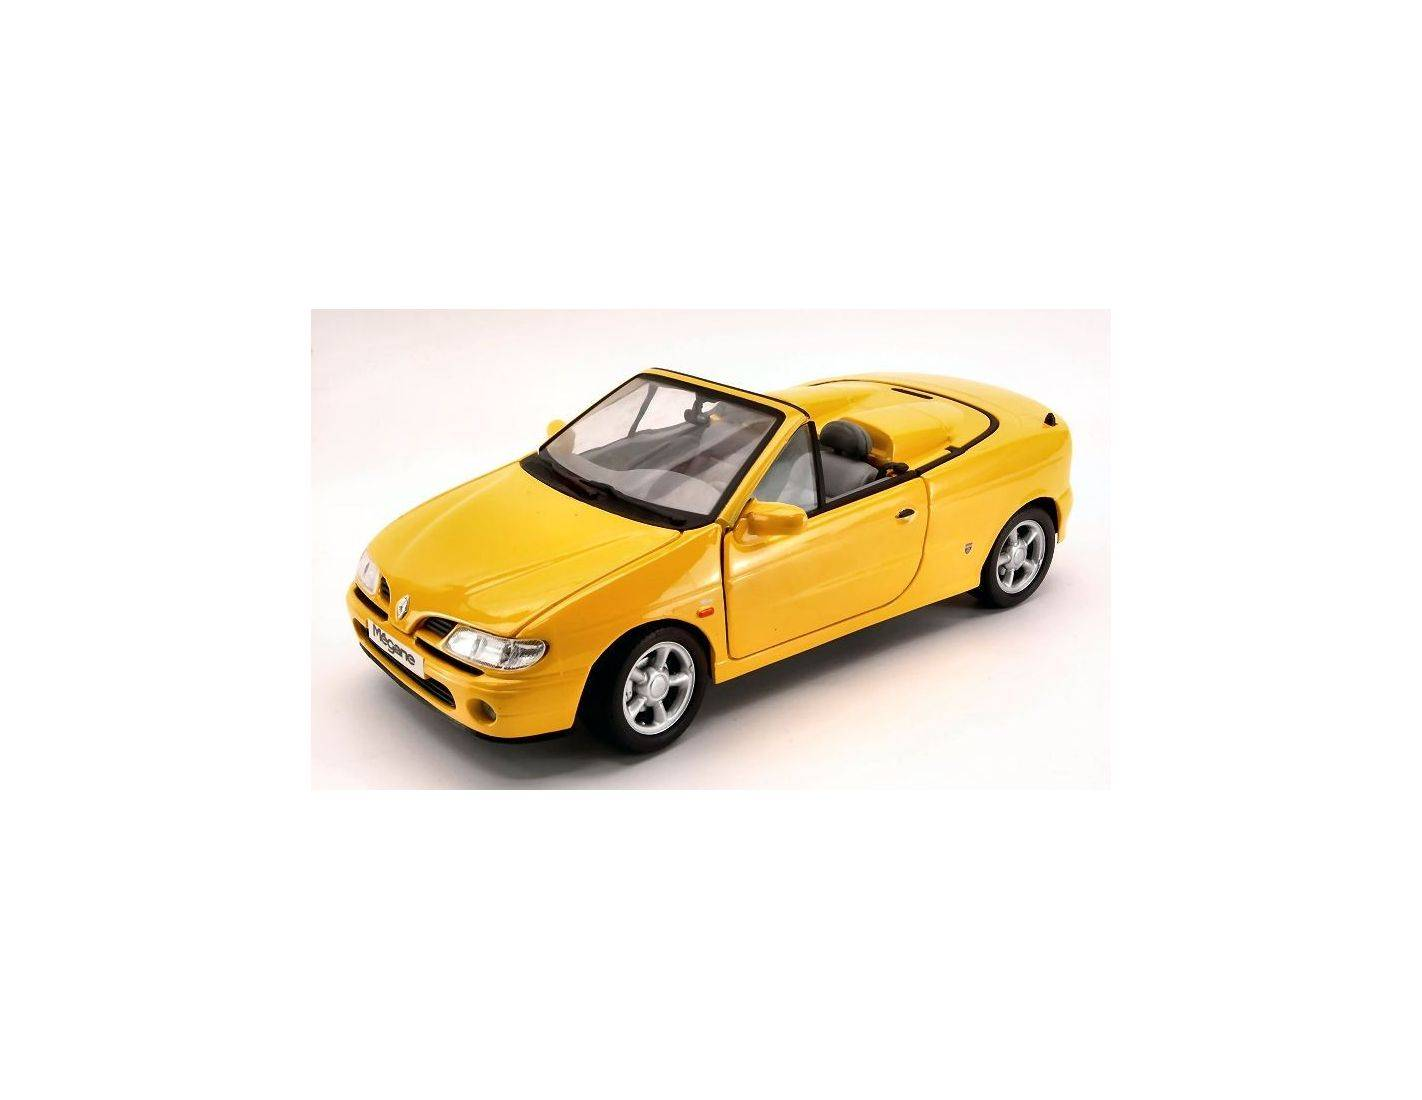 Anson AS0342Y RENAULT MEGANE CONVERTIBLE 1996 YELLOW 1:18 Modellino